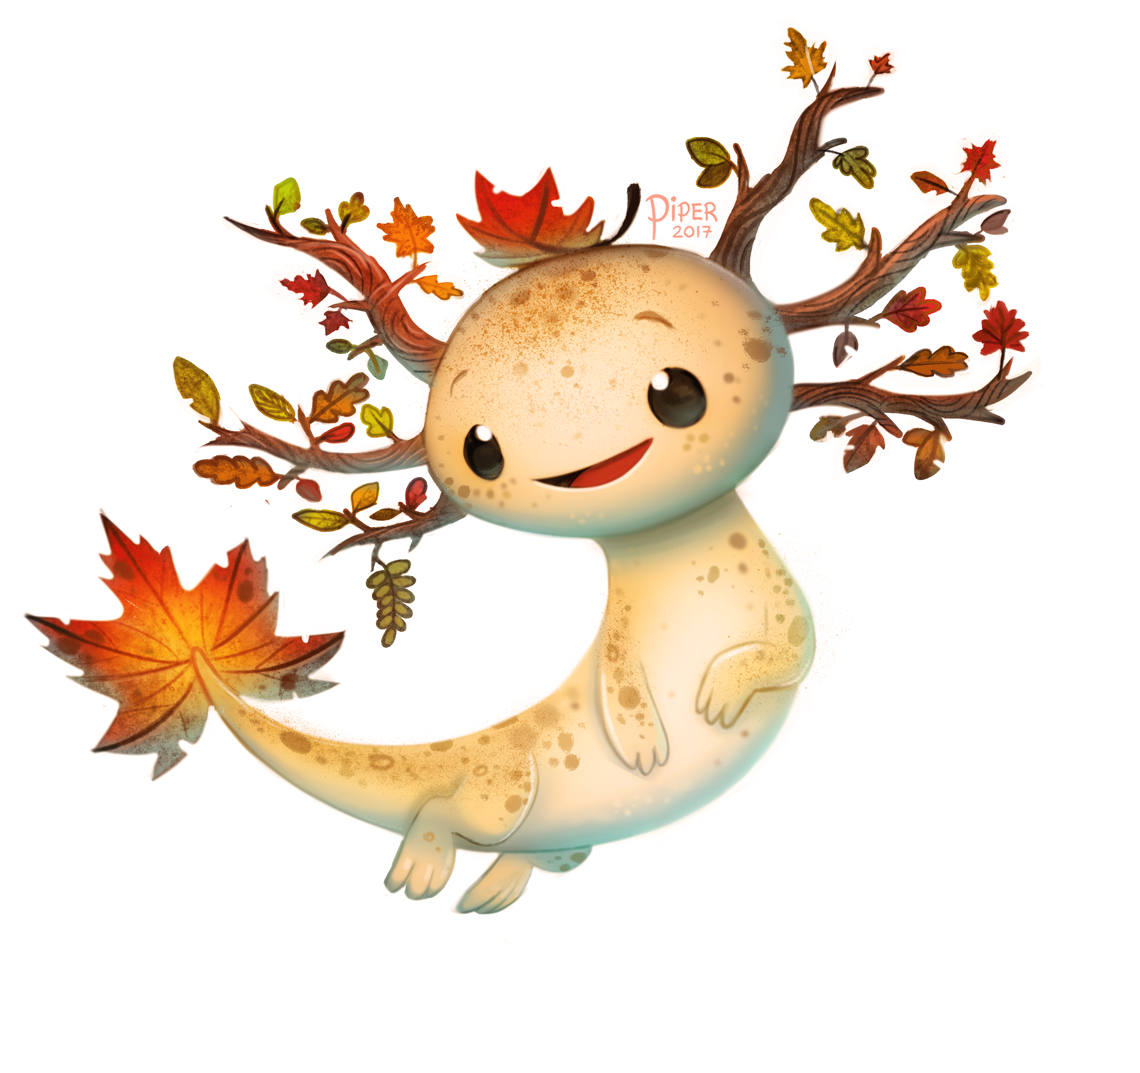 Daily painting by Piper Thibodeau.